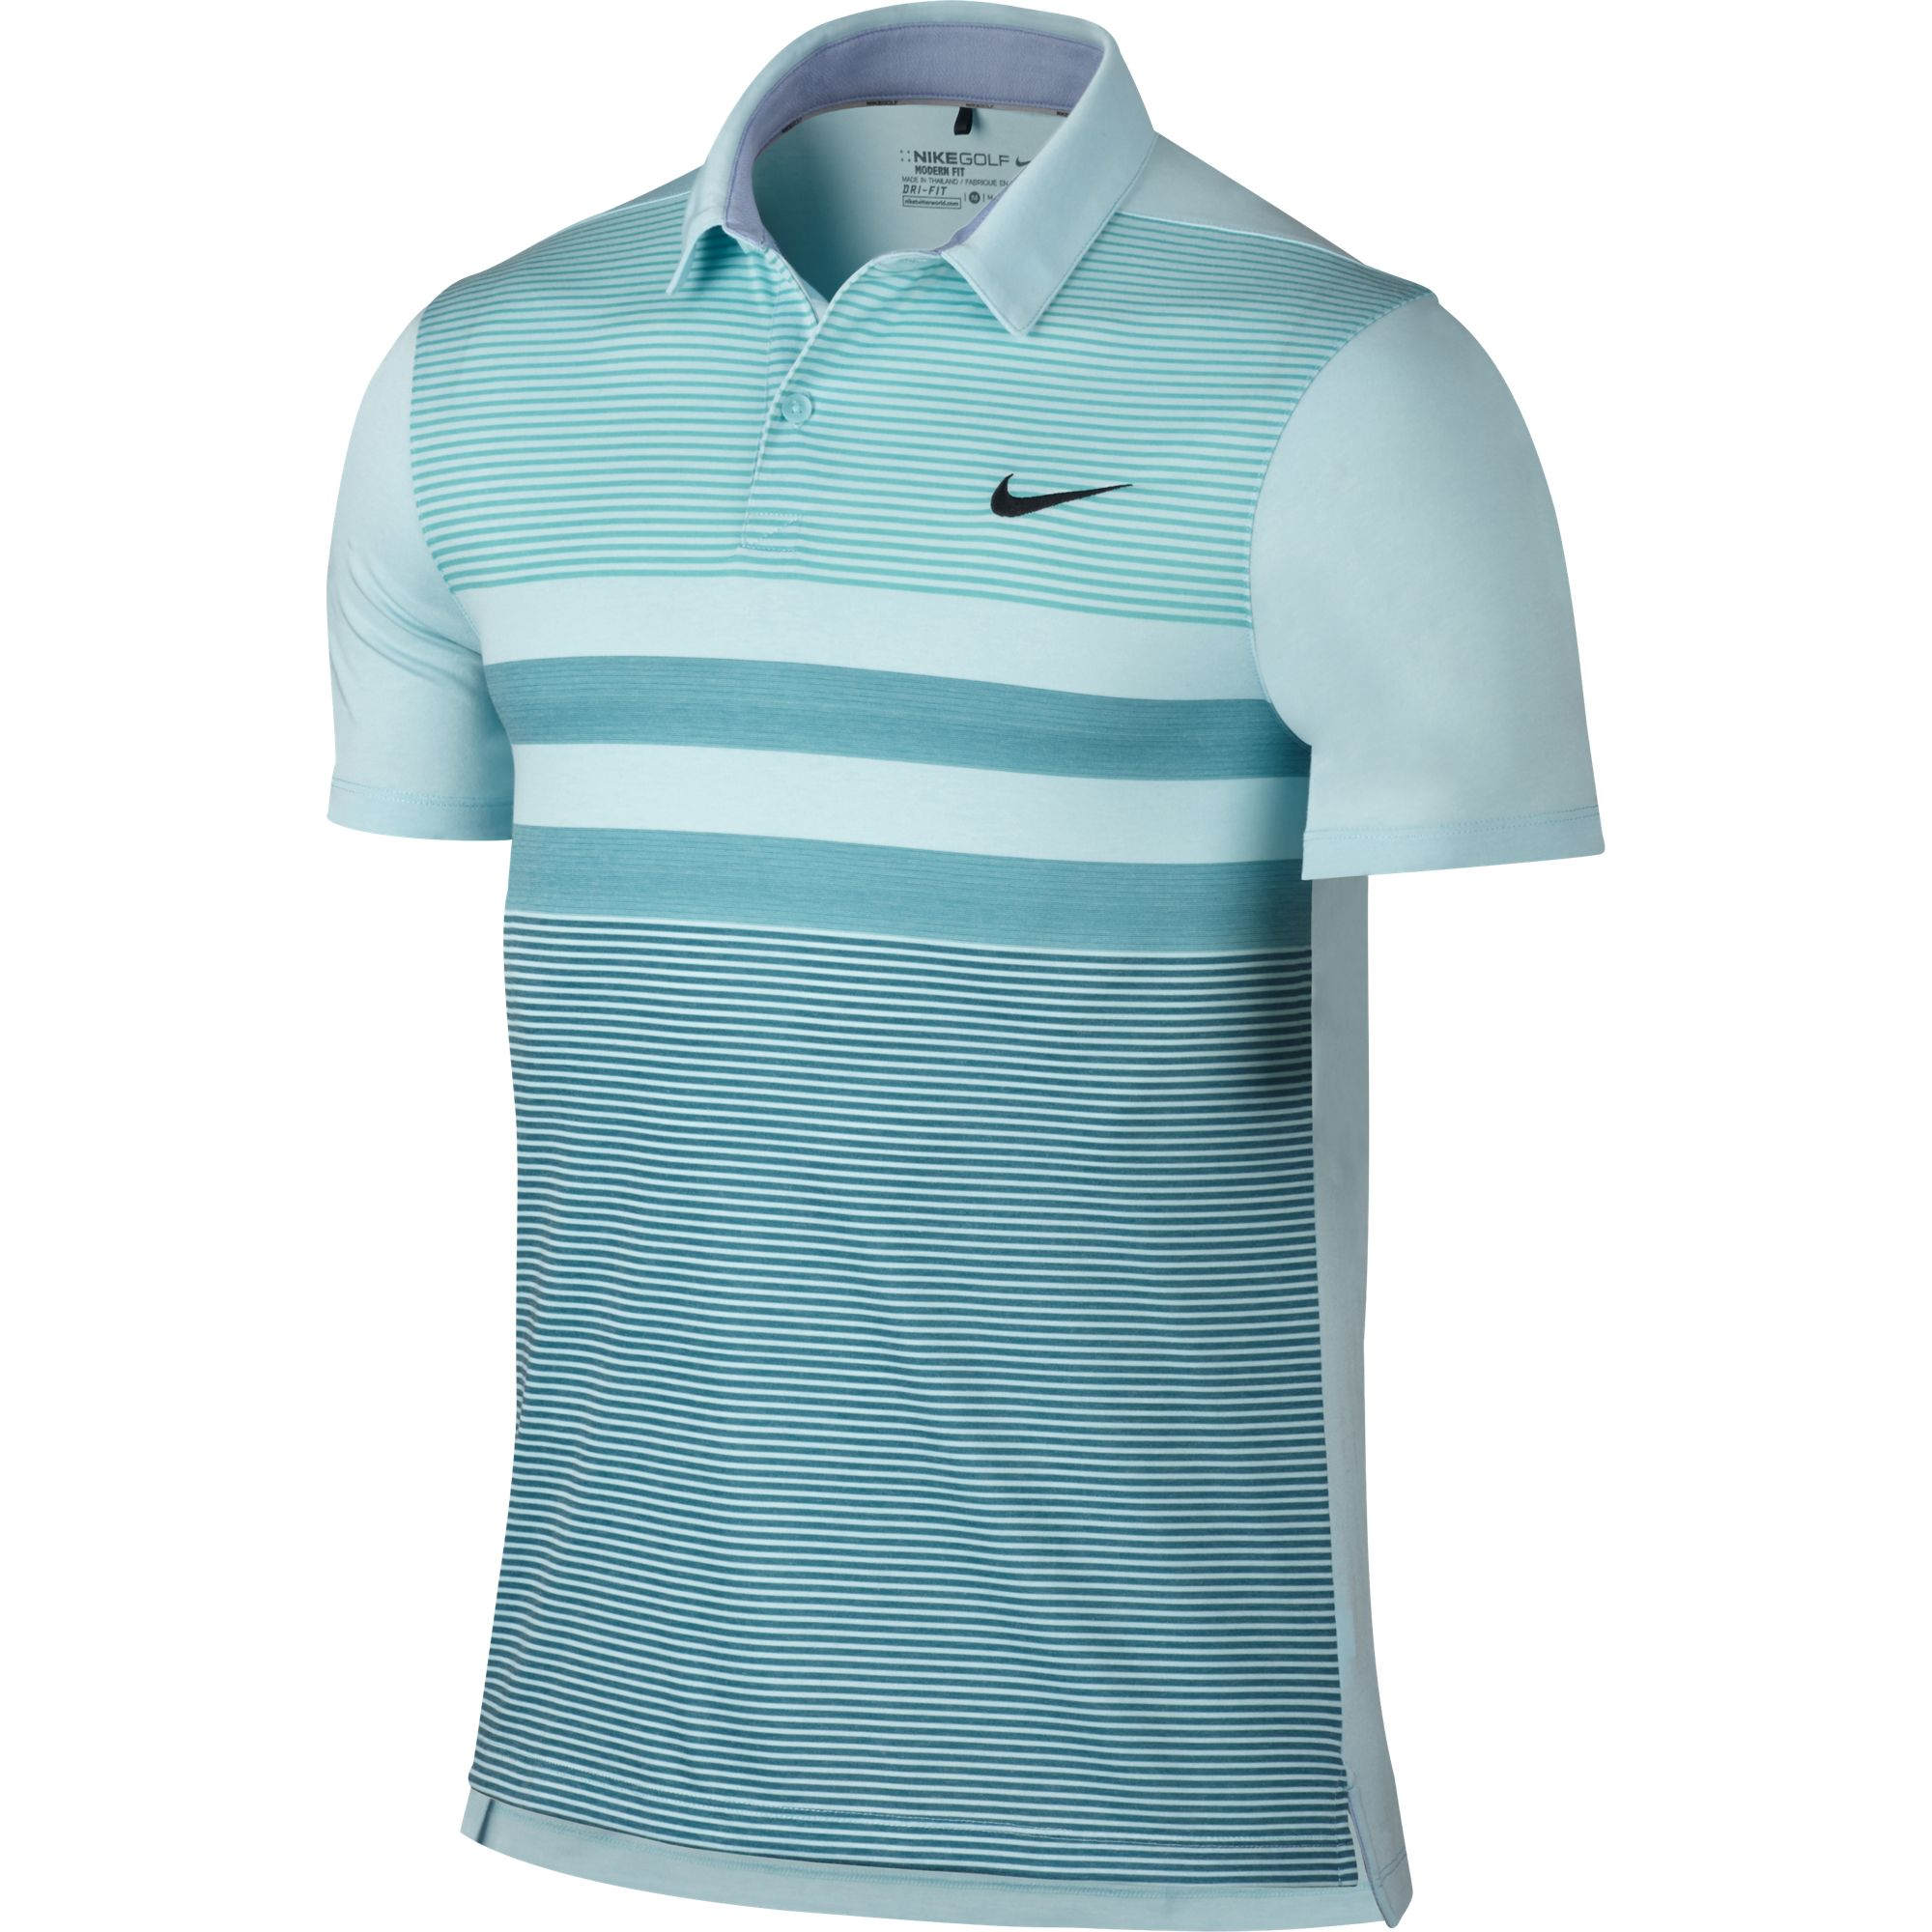 2016 nike modern fit transition dry stripe polo men 39 s dri Modern fit golf shirt